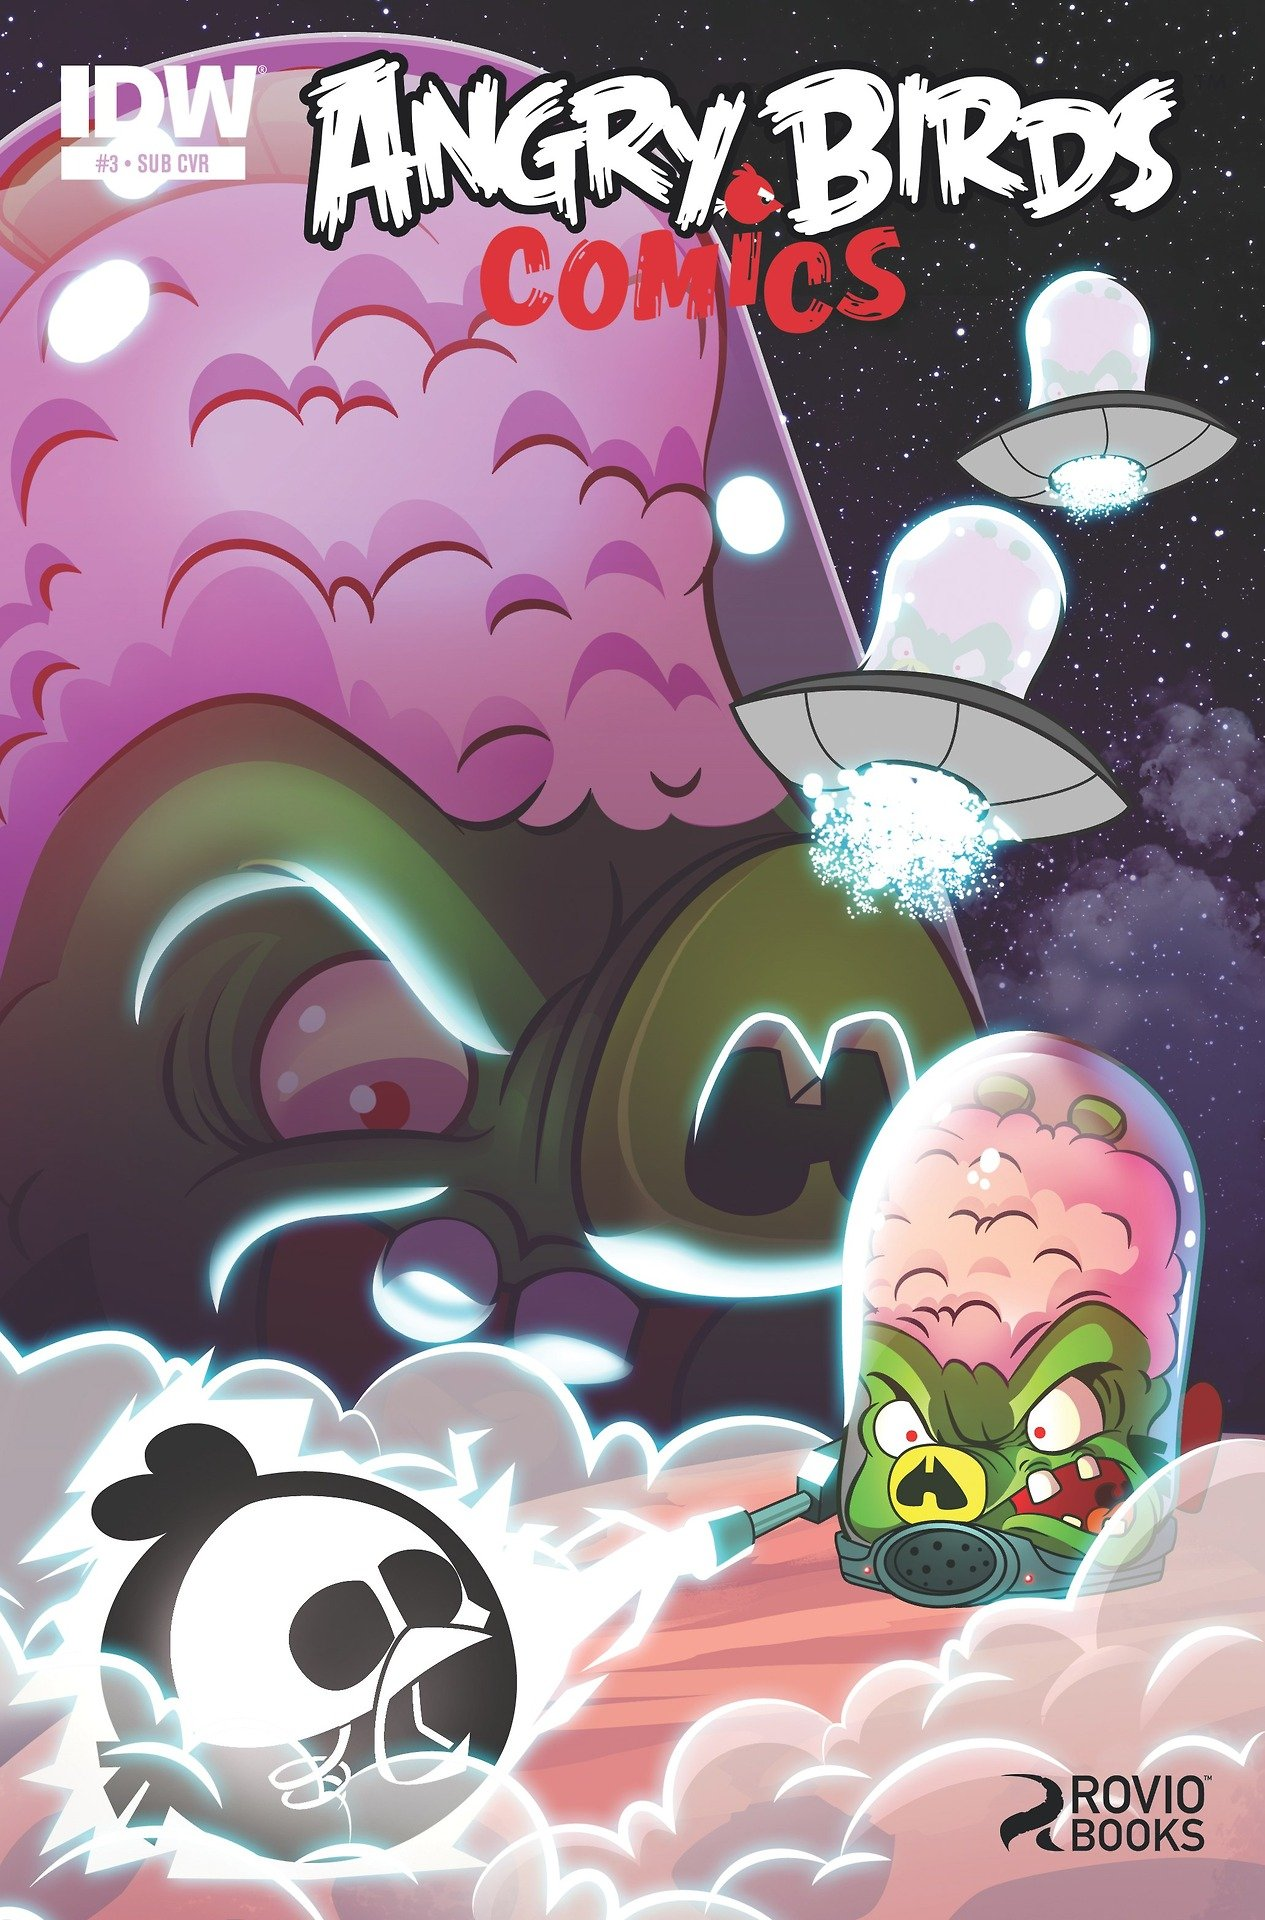 Angry Birds Comics 03 (August 2014) (subscriber cover)